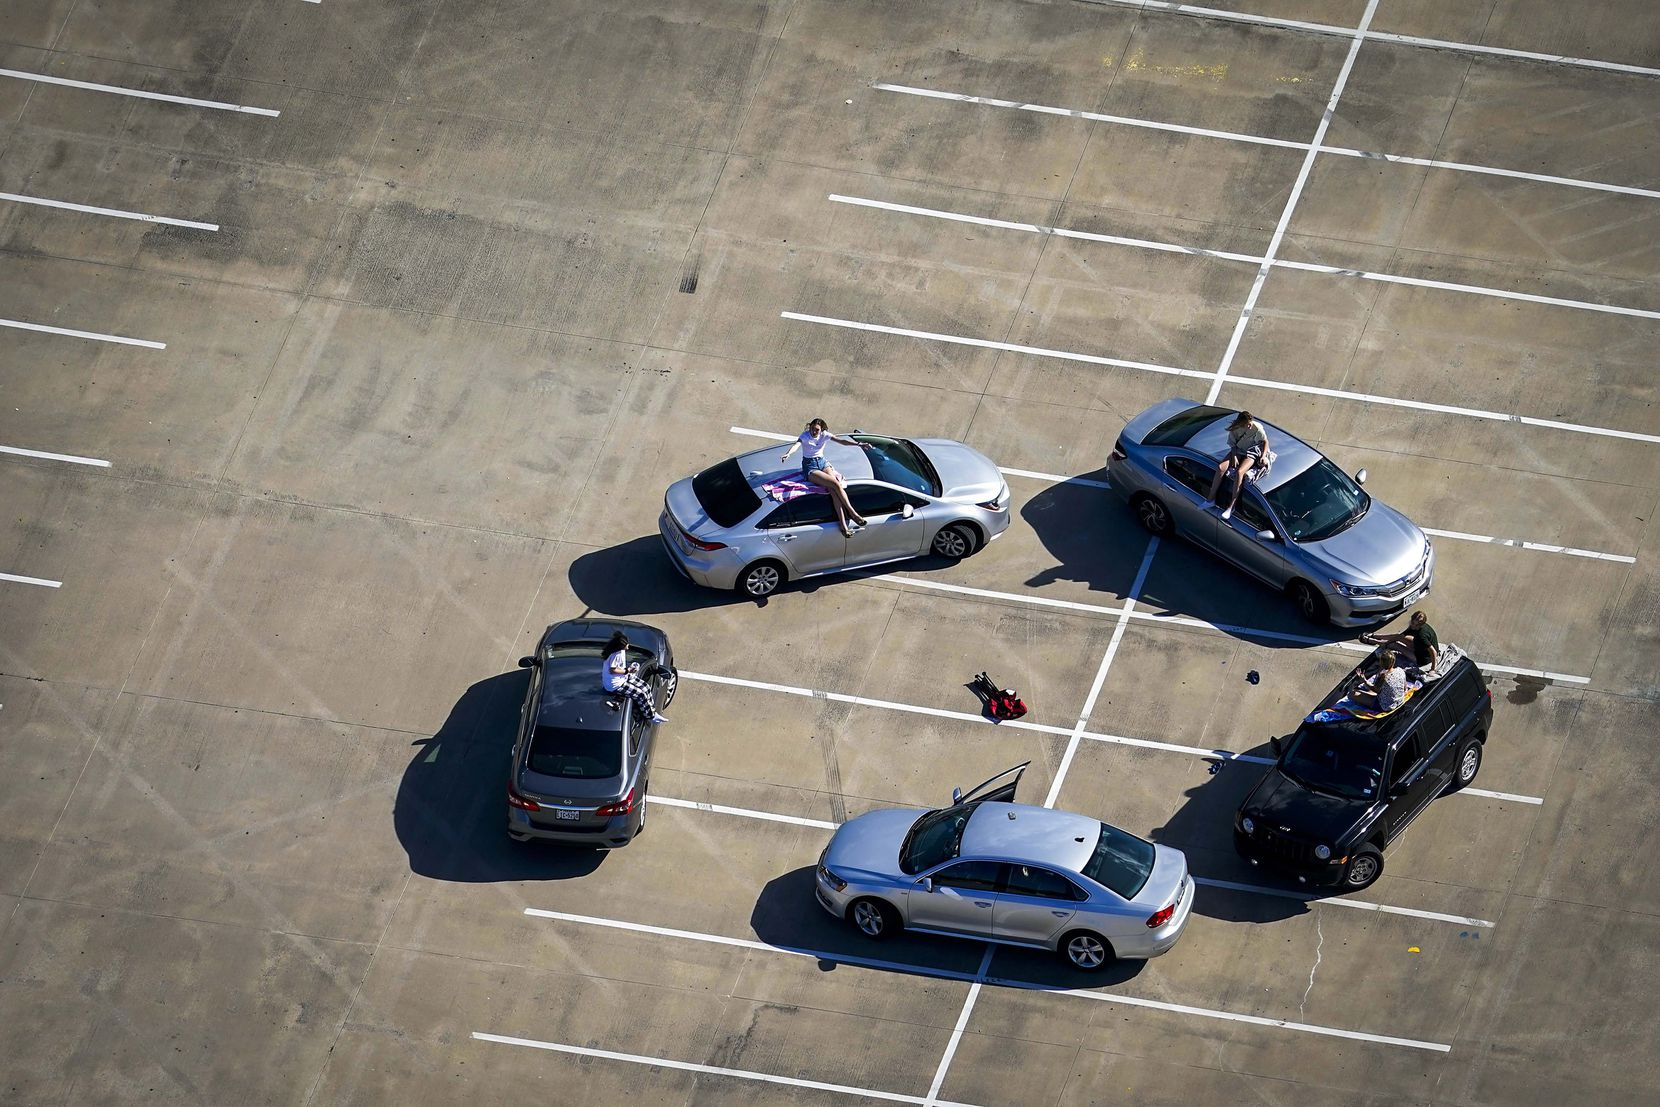 Practicing their own form of social distancing, young people gather in the parking lot of McKinney High School on Tuesday, March 24, 2020.